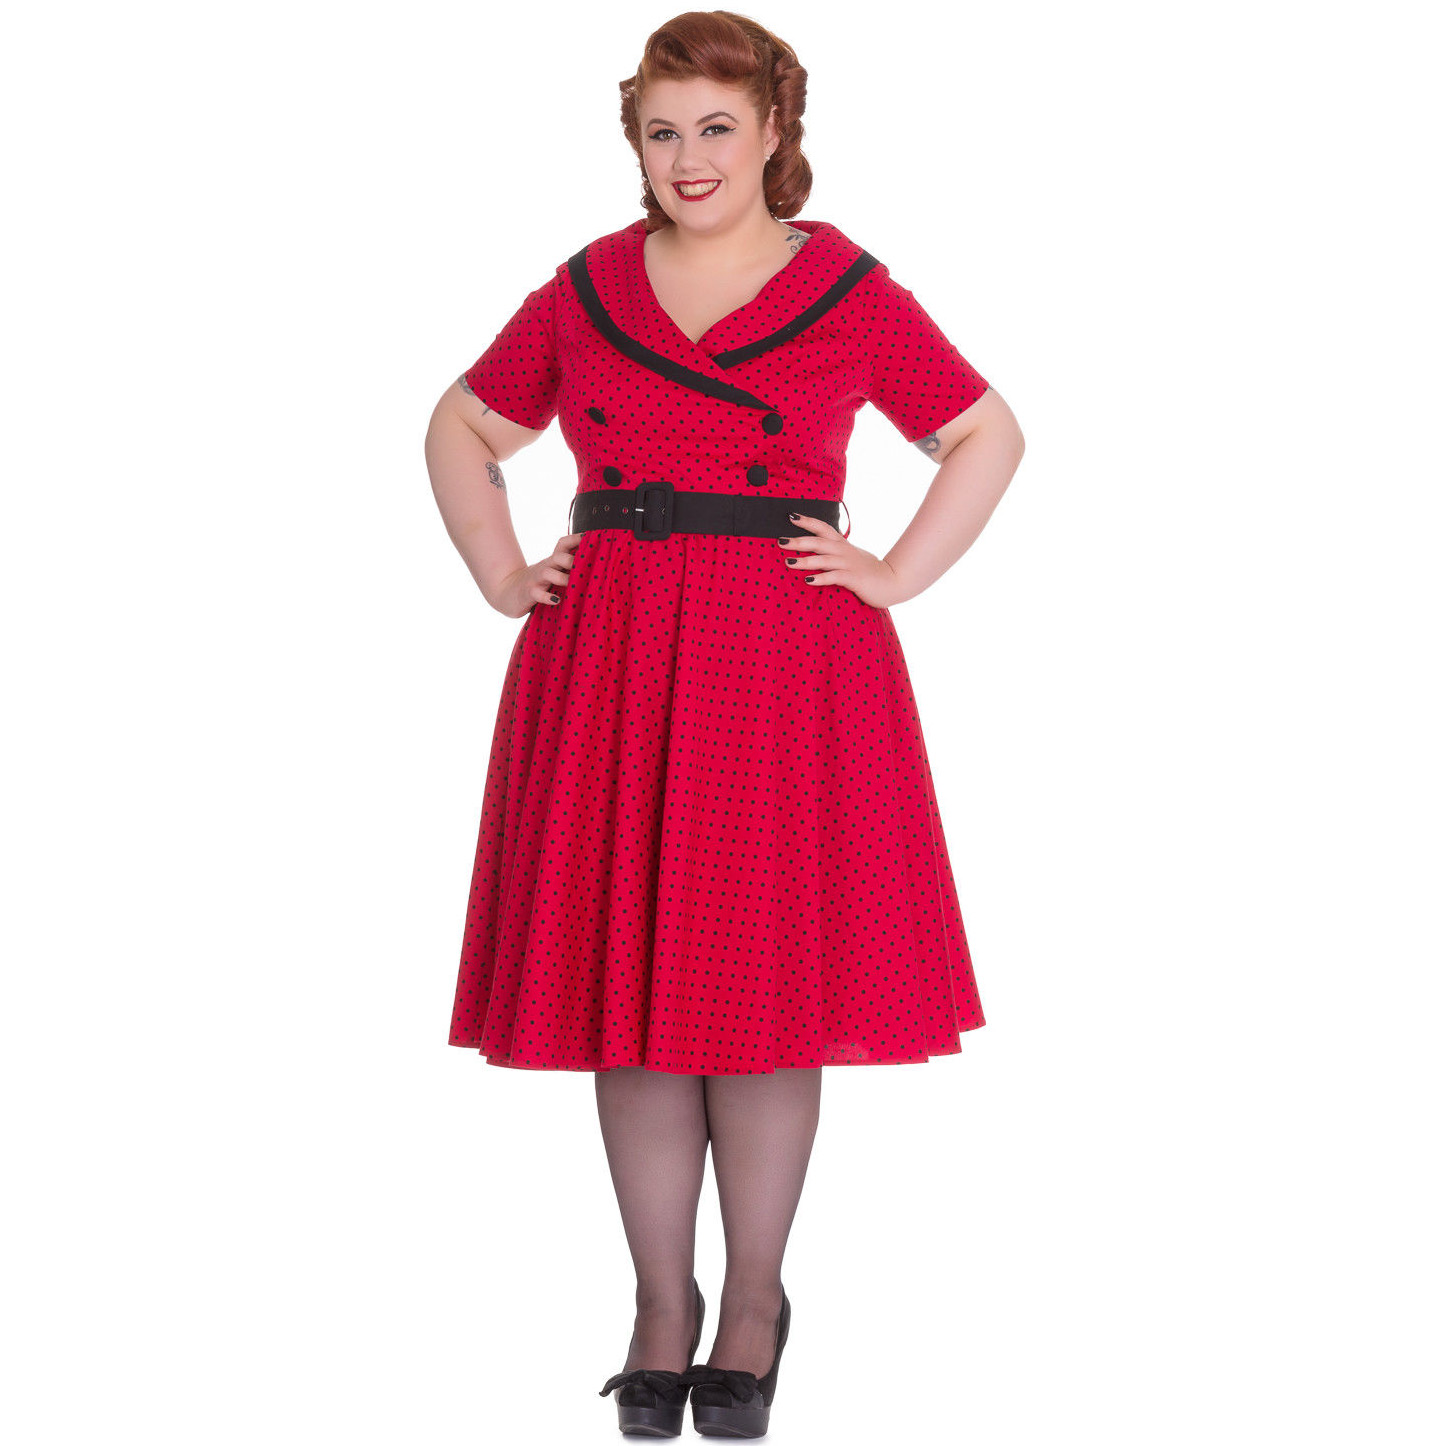 Hell-Bunny-40s-50s-Pin-Up-Swing-Dress-MIMI-Polka-Dot-Black-Red-All-Sizes thumbnail 3